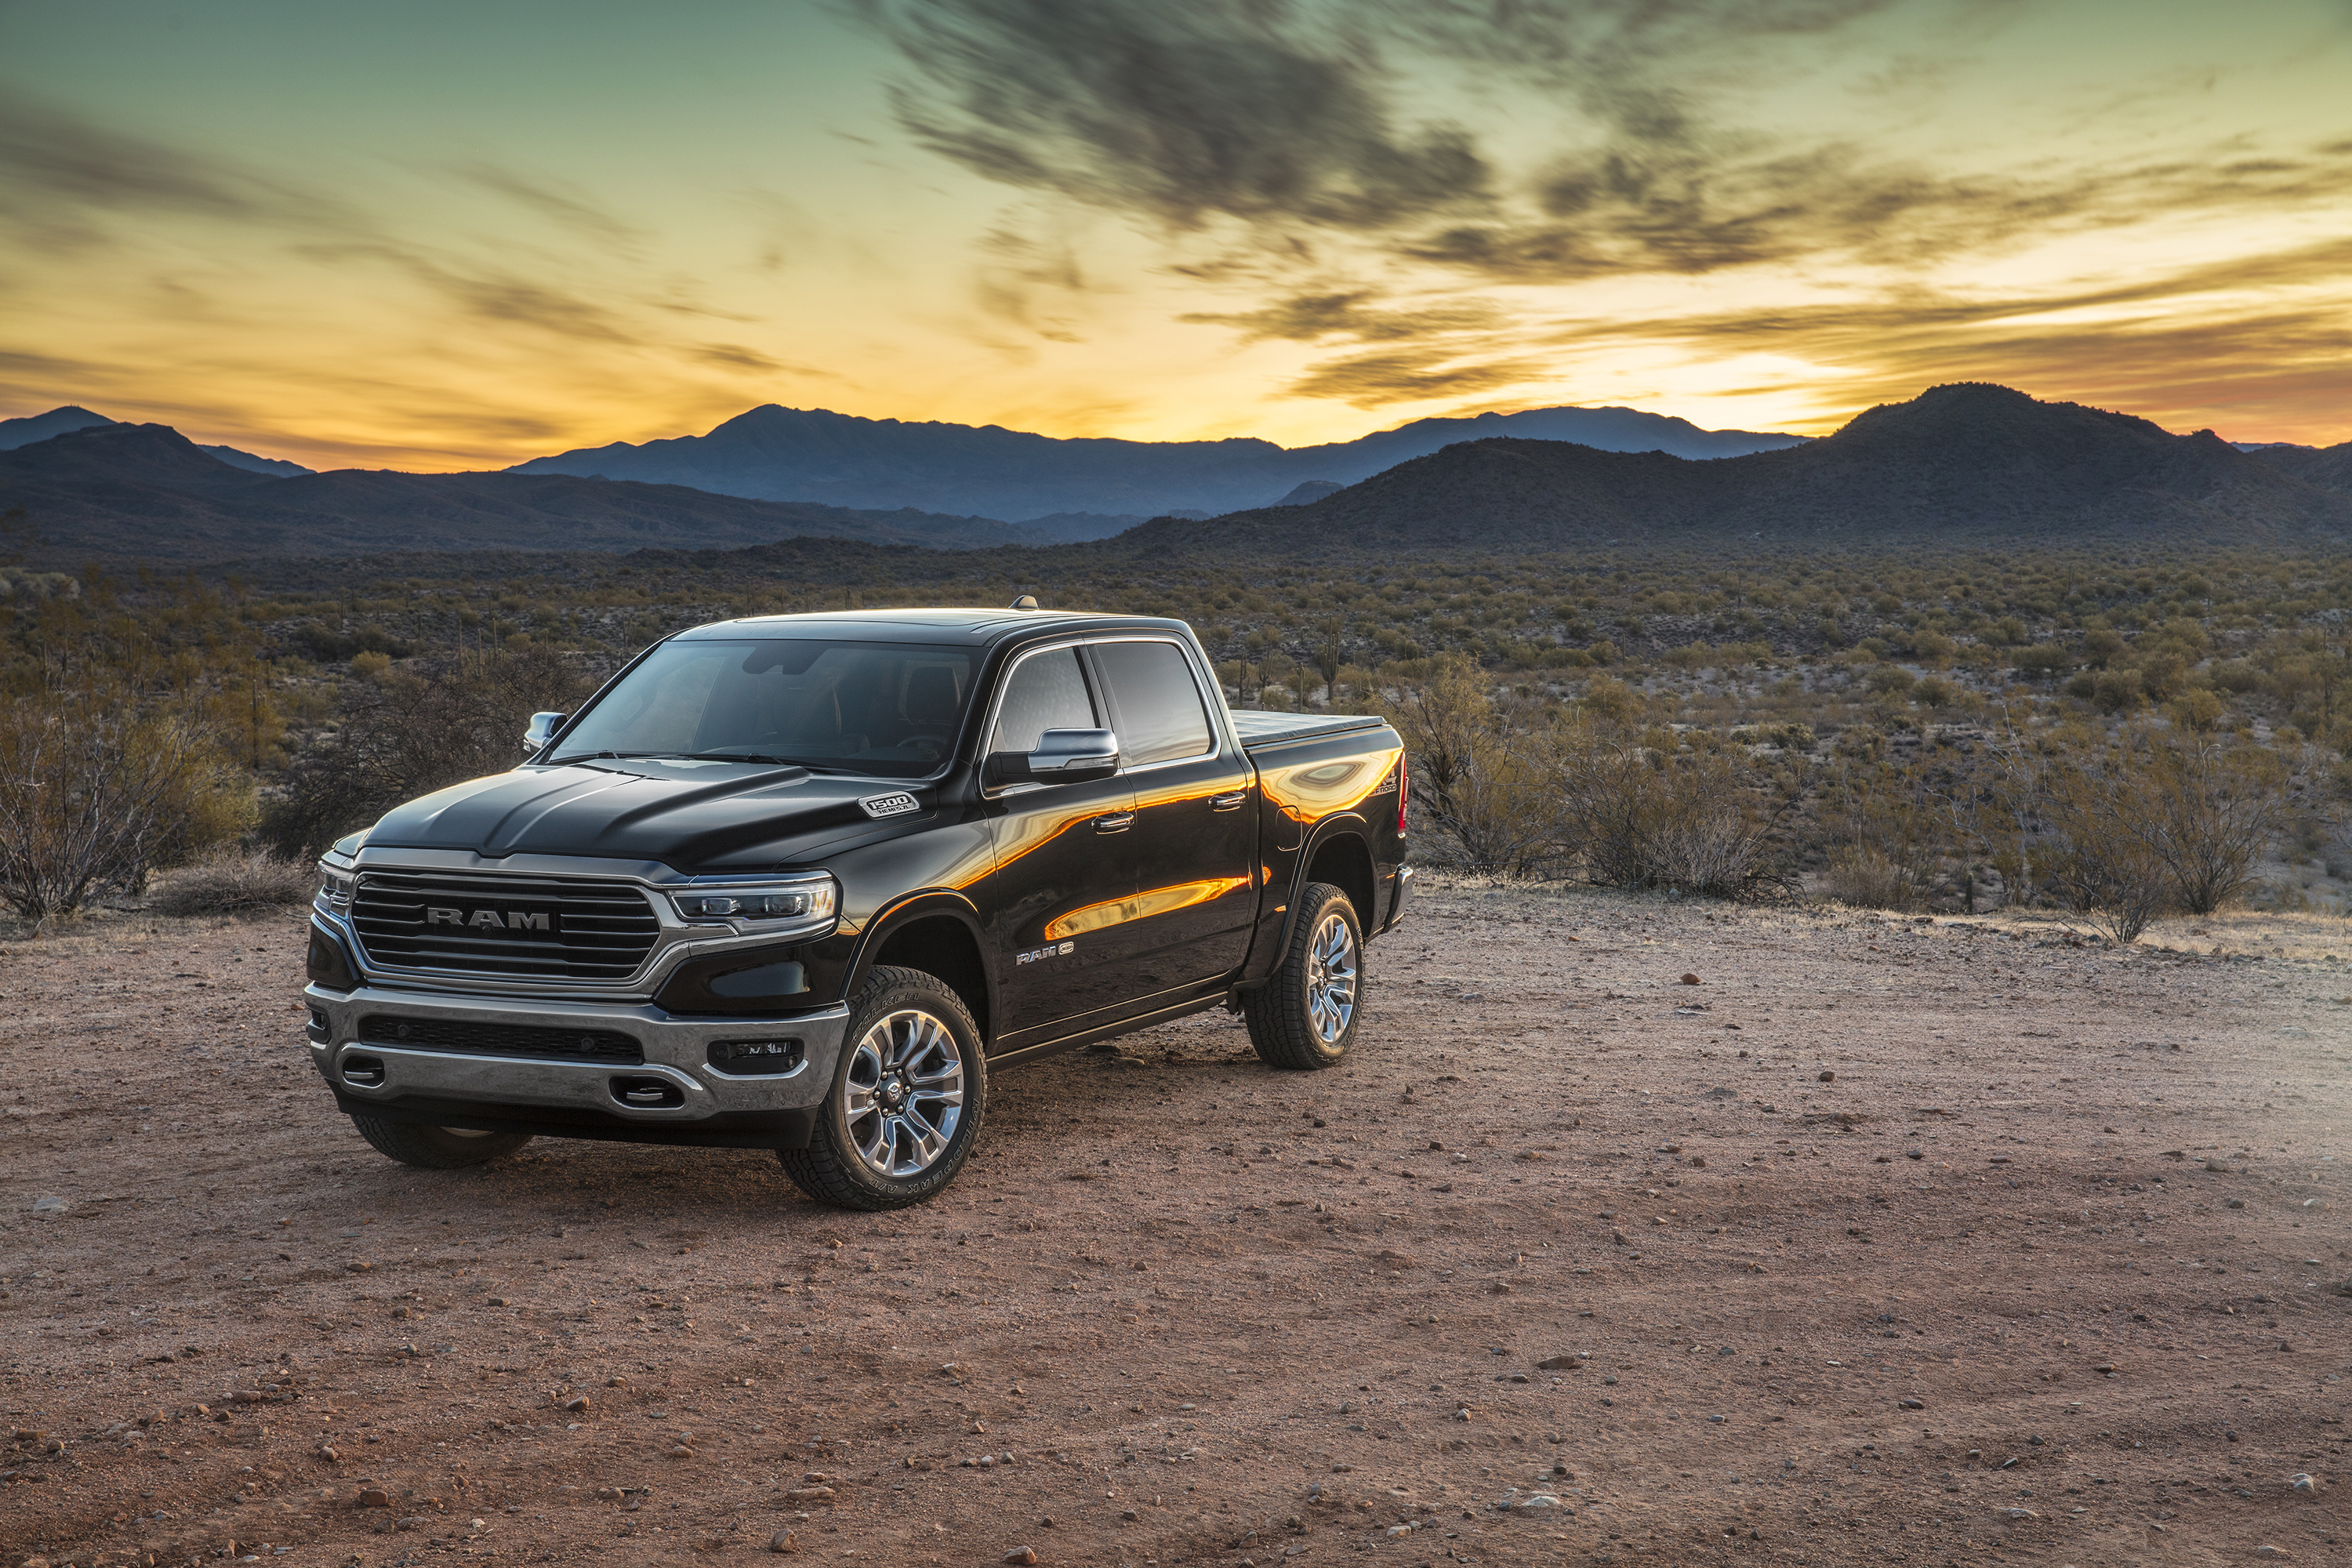 2019 Ram 1500 Truck of Texas